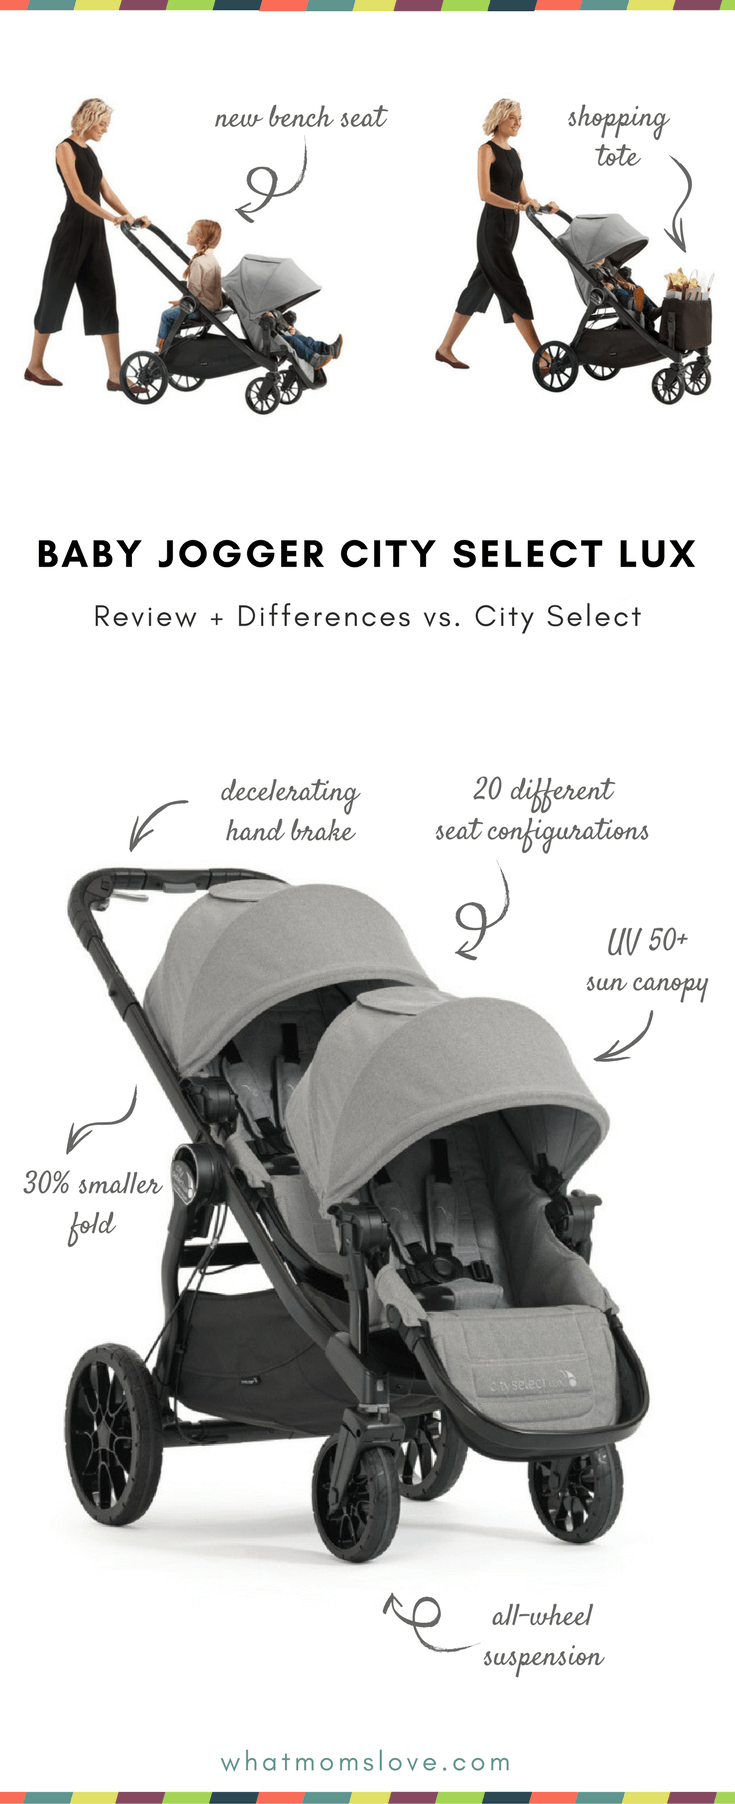 Buggy Board Für Peg Perego Book Baby Jogger City Select Lux Review The Super Adaptable